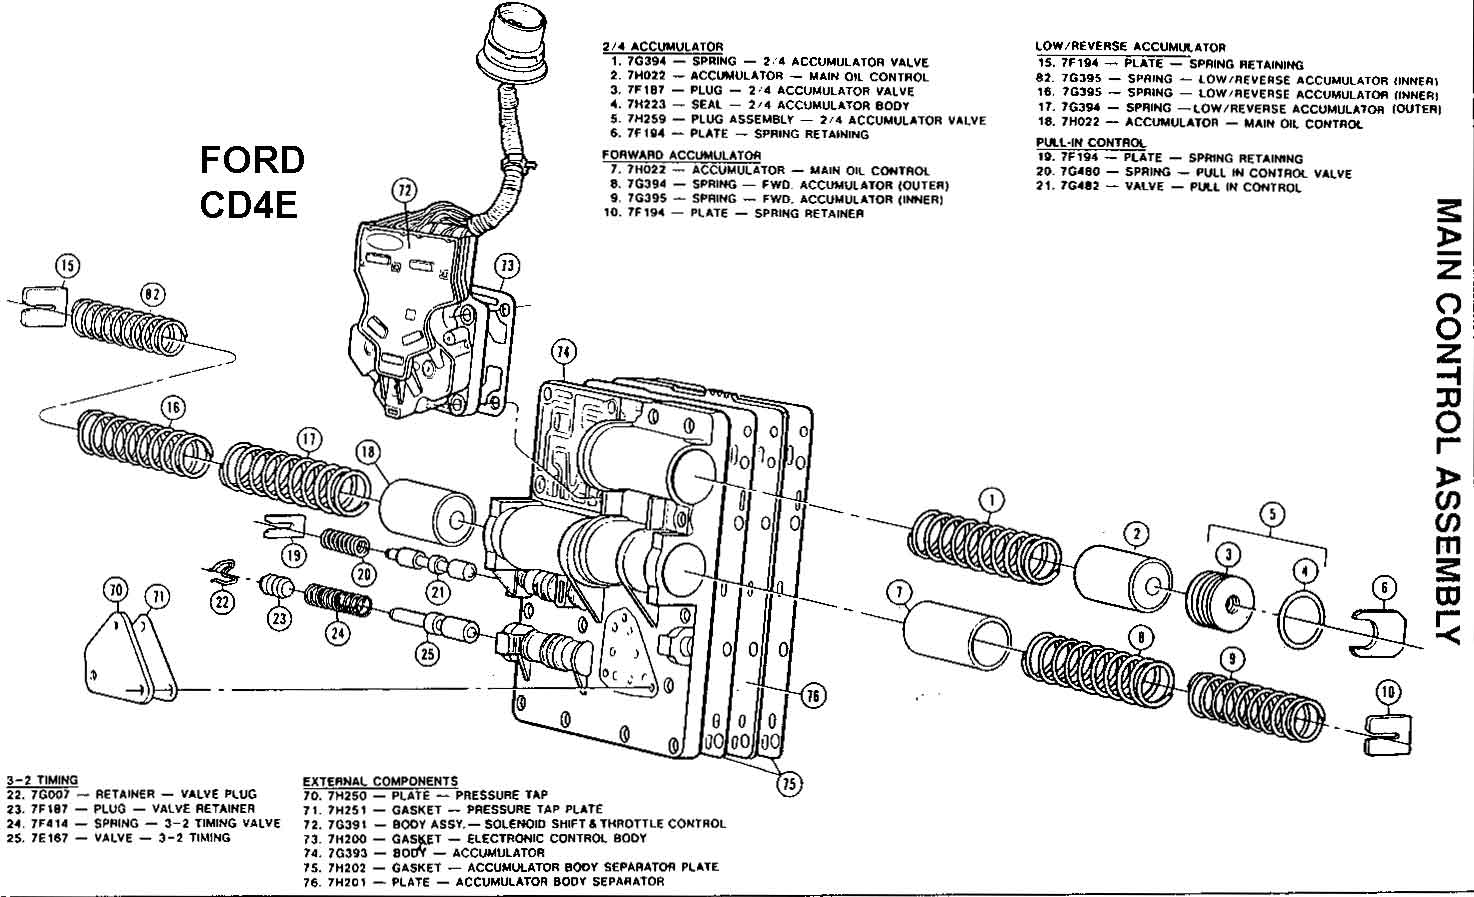 ford windstar transmission diagram  ford  auto wiring diagram